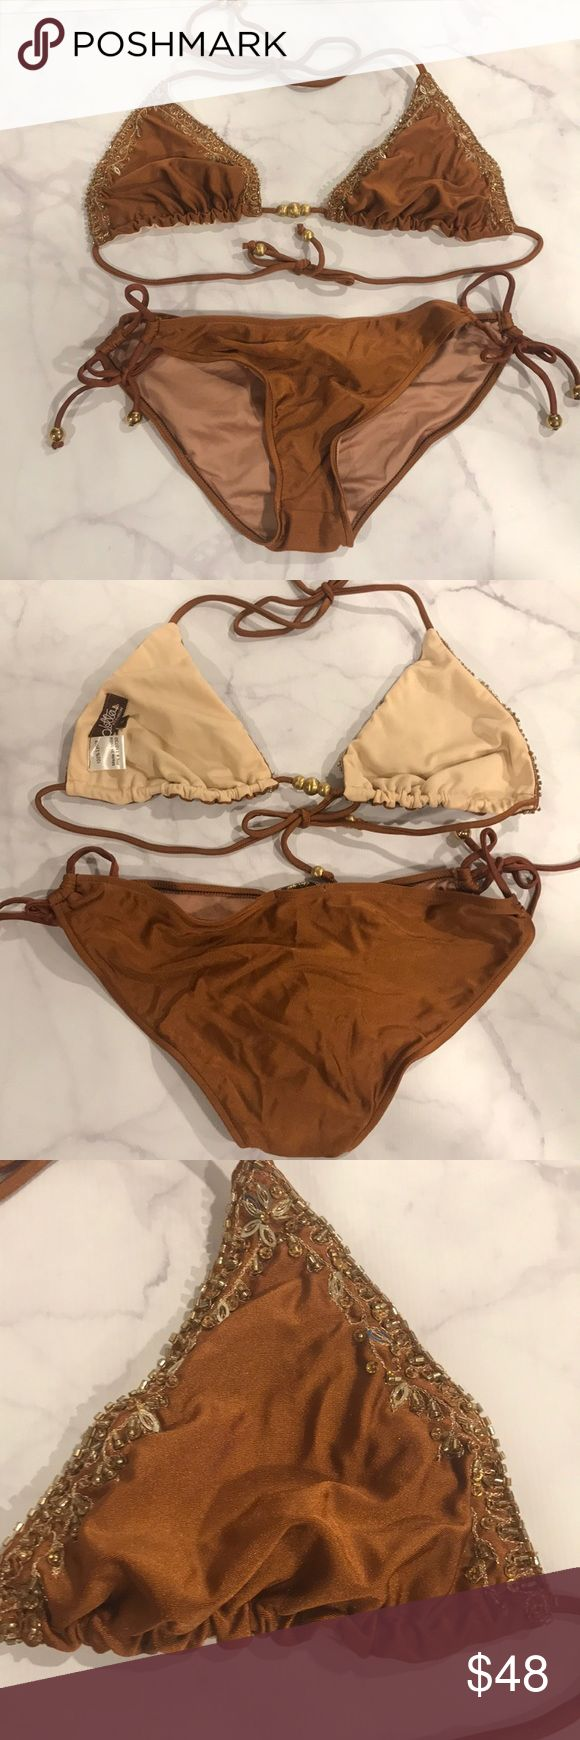 NWOT Never Worn Lotta Stensson Gold Beaded Bikini NEW WITHOUT TAGS, Never Worn Lotta Stensson Gold Beaded Bikini -  Goldish Brown Triangle bikini with gorgeous gold beading on the top. Bottom ties at both sides with gold beads on the ends of the ties. Still has hygienic lining in it because it's never been worn.  Size L Lotta Stensson Swim Bikinis